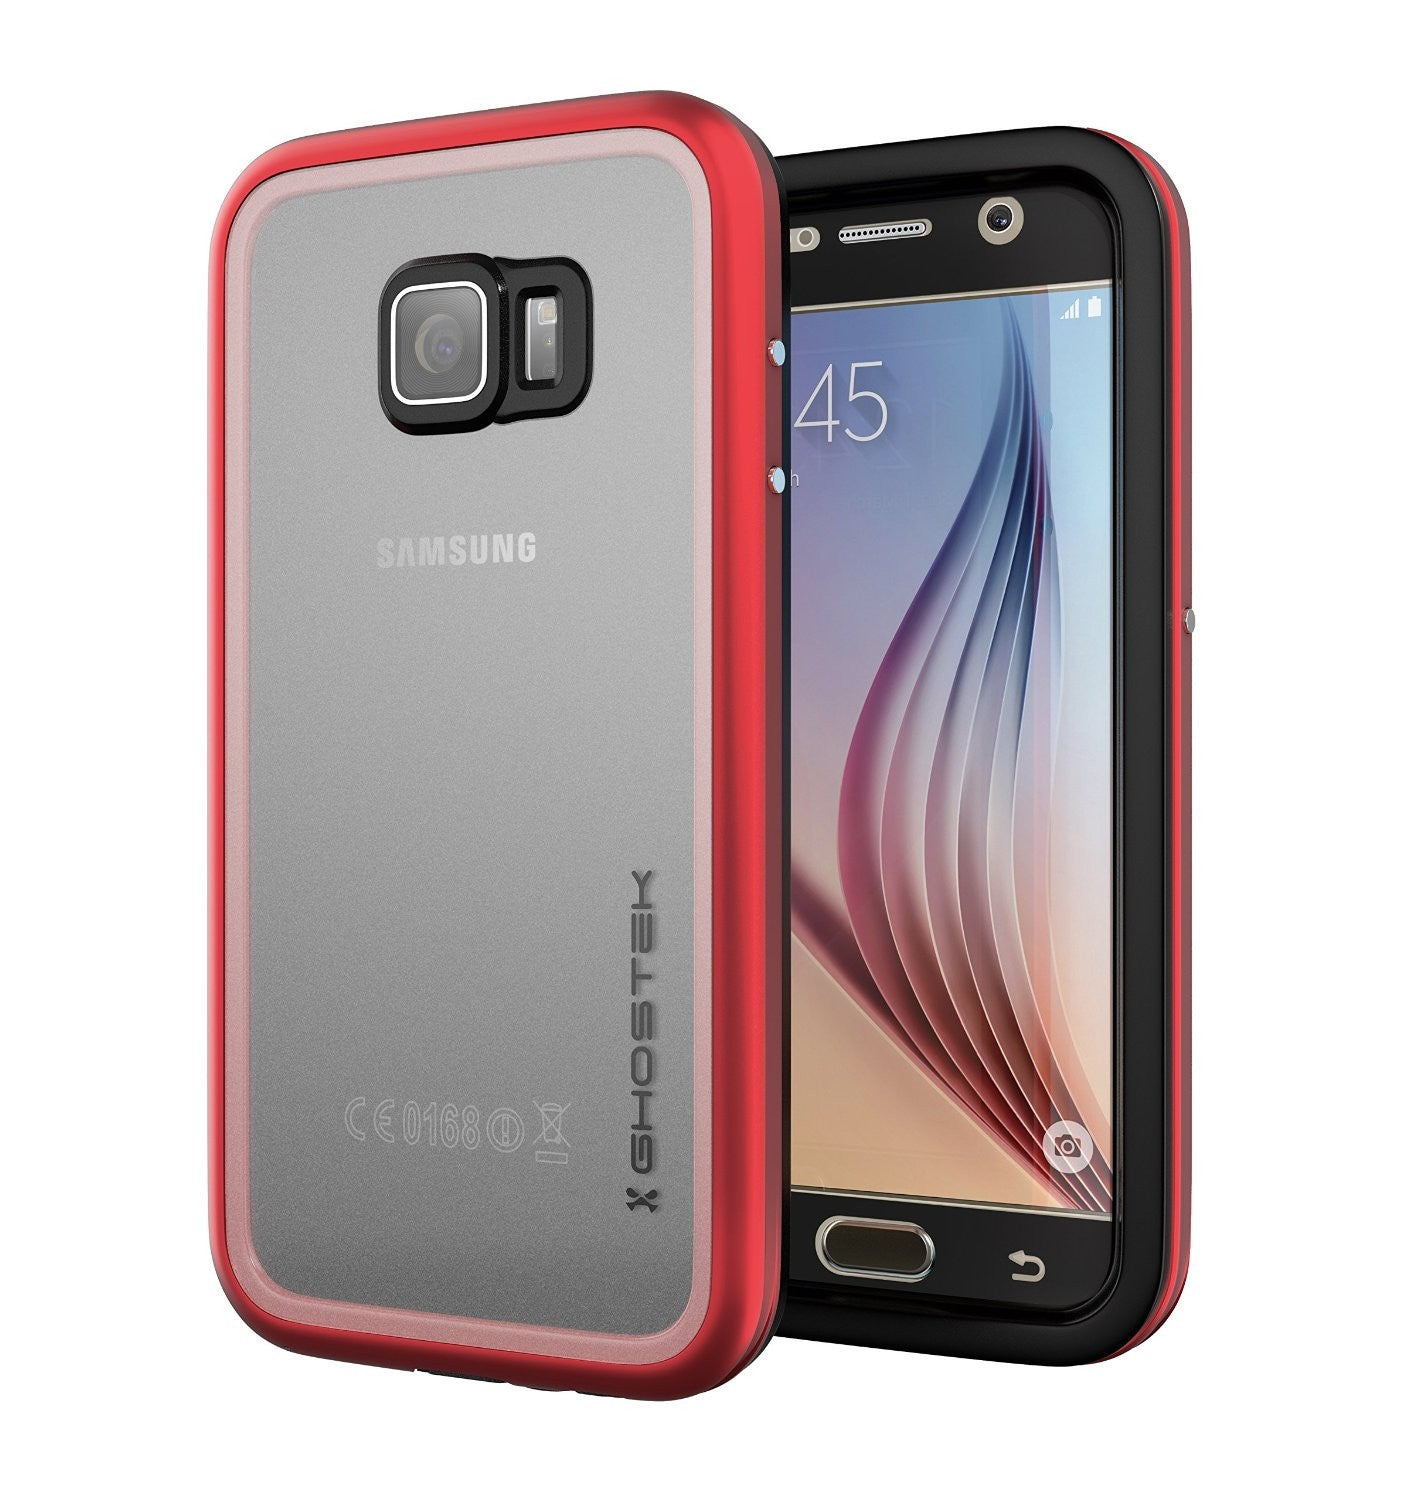 Galaxy S6 Waterproof Case, Ghostek Atomic 2.0 Red  Water/Shock/Dirt/Snow Proof | Lifetime Warranty